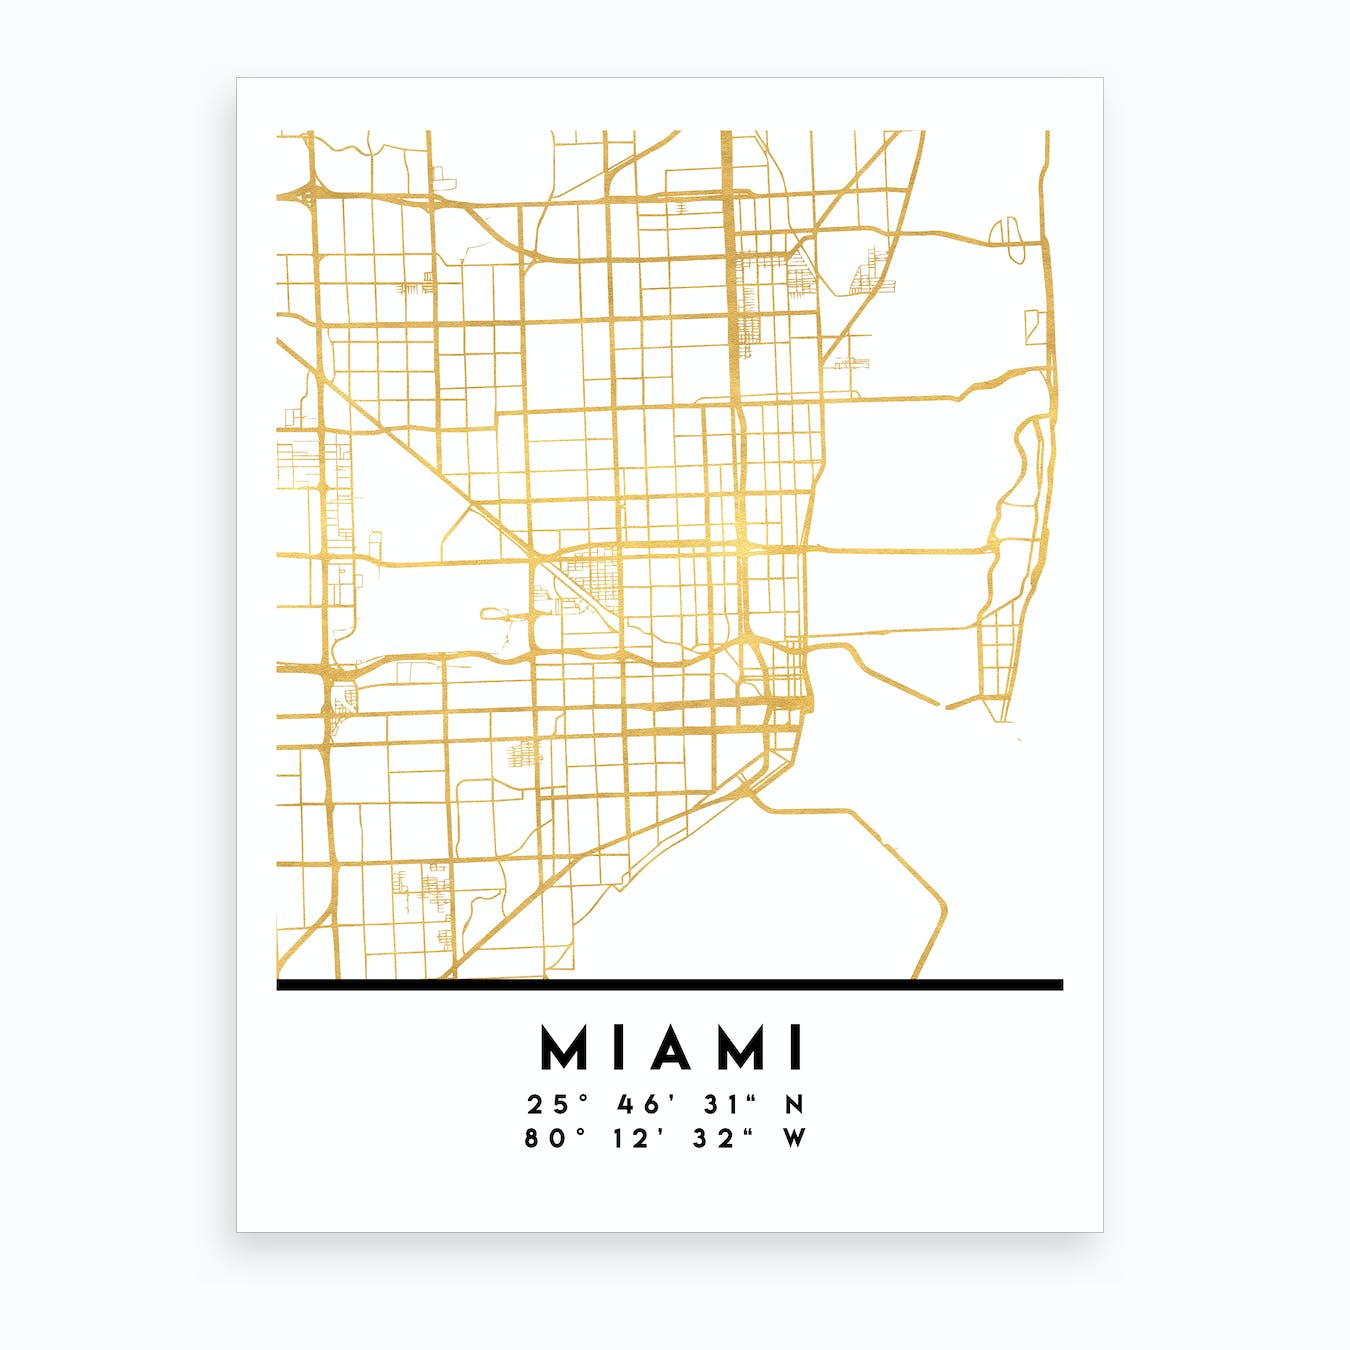 Miami Florida City Street Map